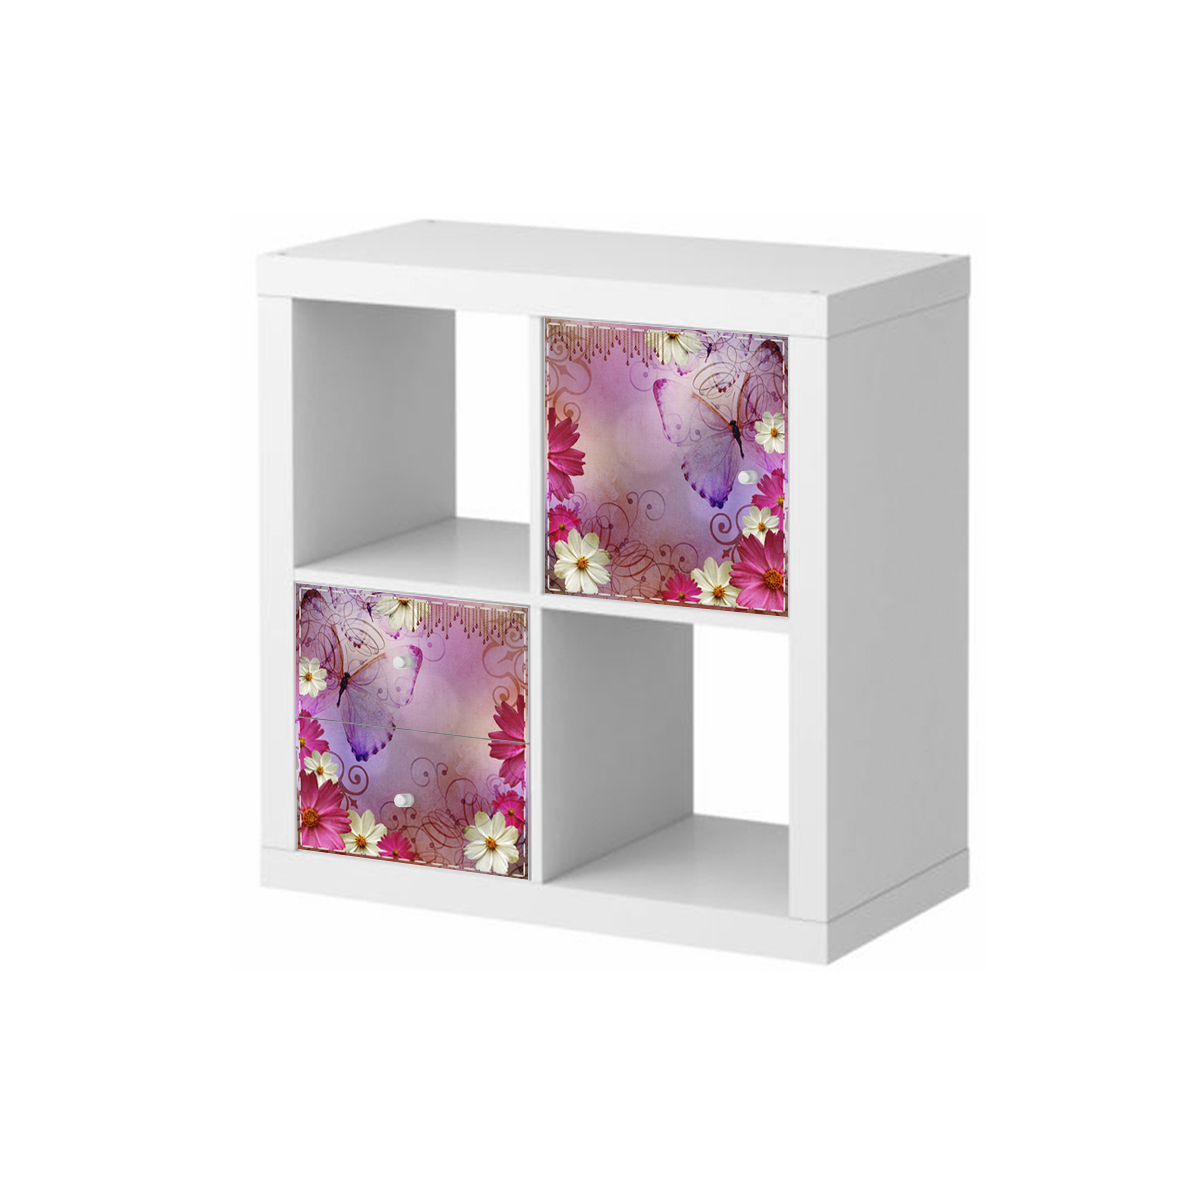 stickers meubles ikea stickers meubles ikea papillon et fleurs ambiance. Black Bedroom Furniture Sets. Home Design Ideas